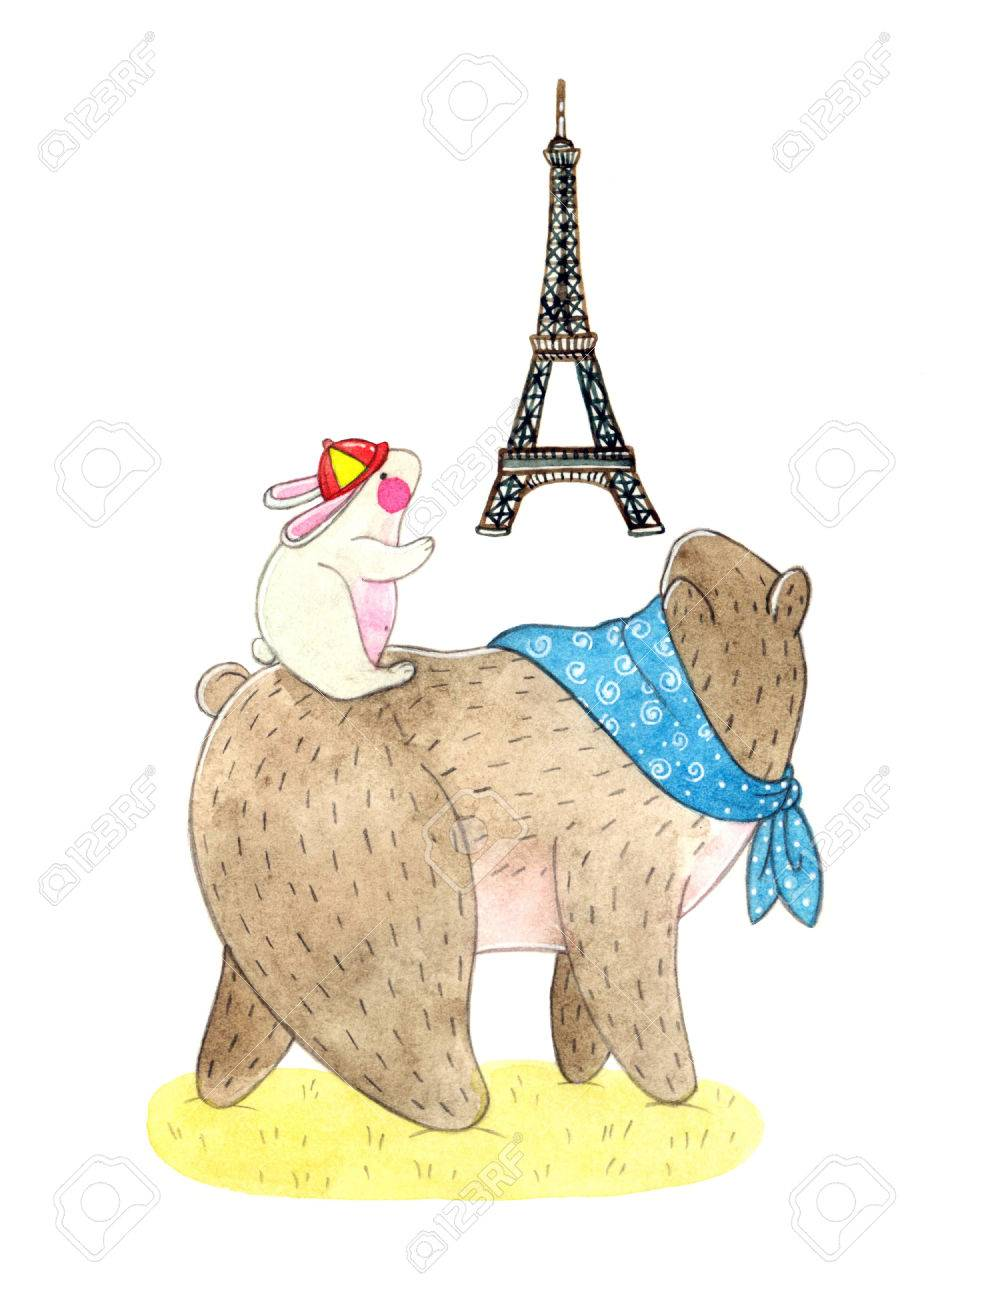 Watercolor Illustration Of A Cute Teddy Bear And Bunny And National